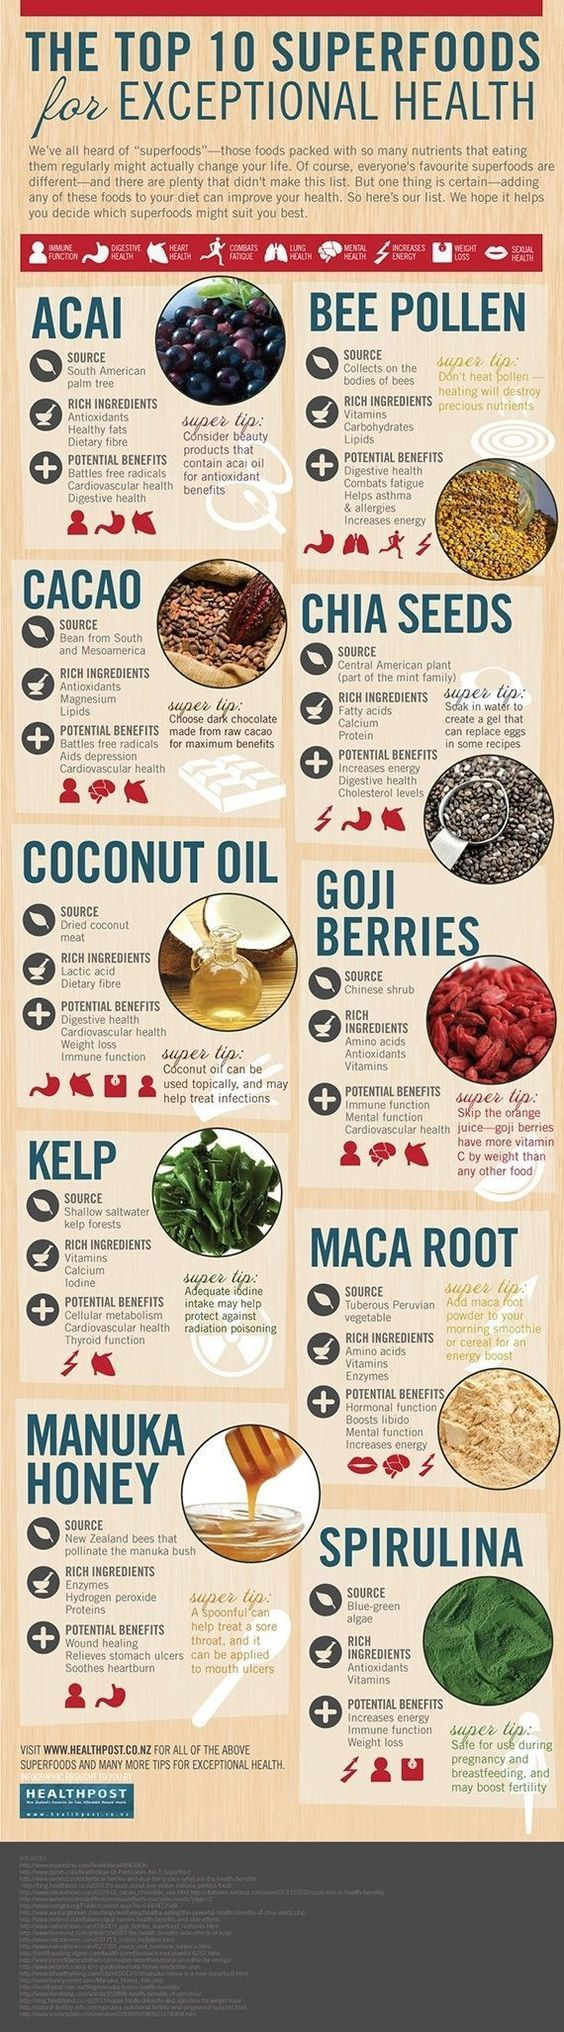 Top 10 superfoods for exceptional health published by nutribullet on tue 2013 07